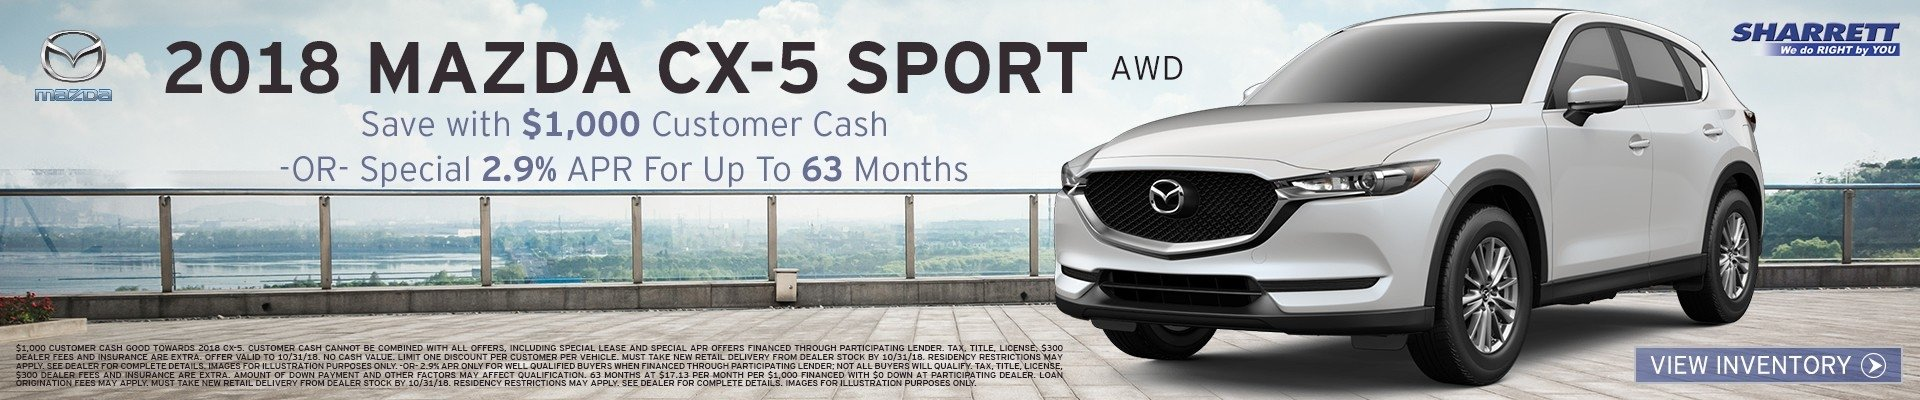 Get Special 2.9% APR for up to 63 mos on a new 2018 Mazda CX-5 Sport AWD